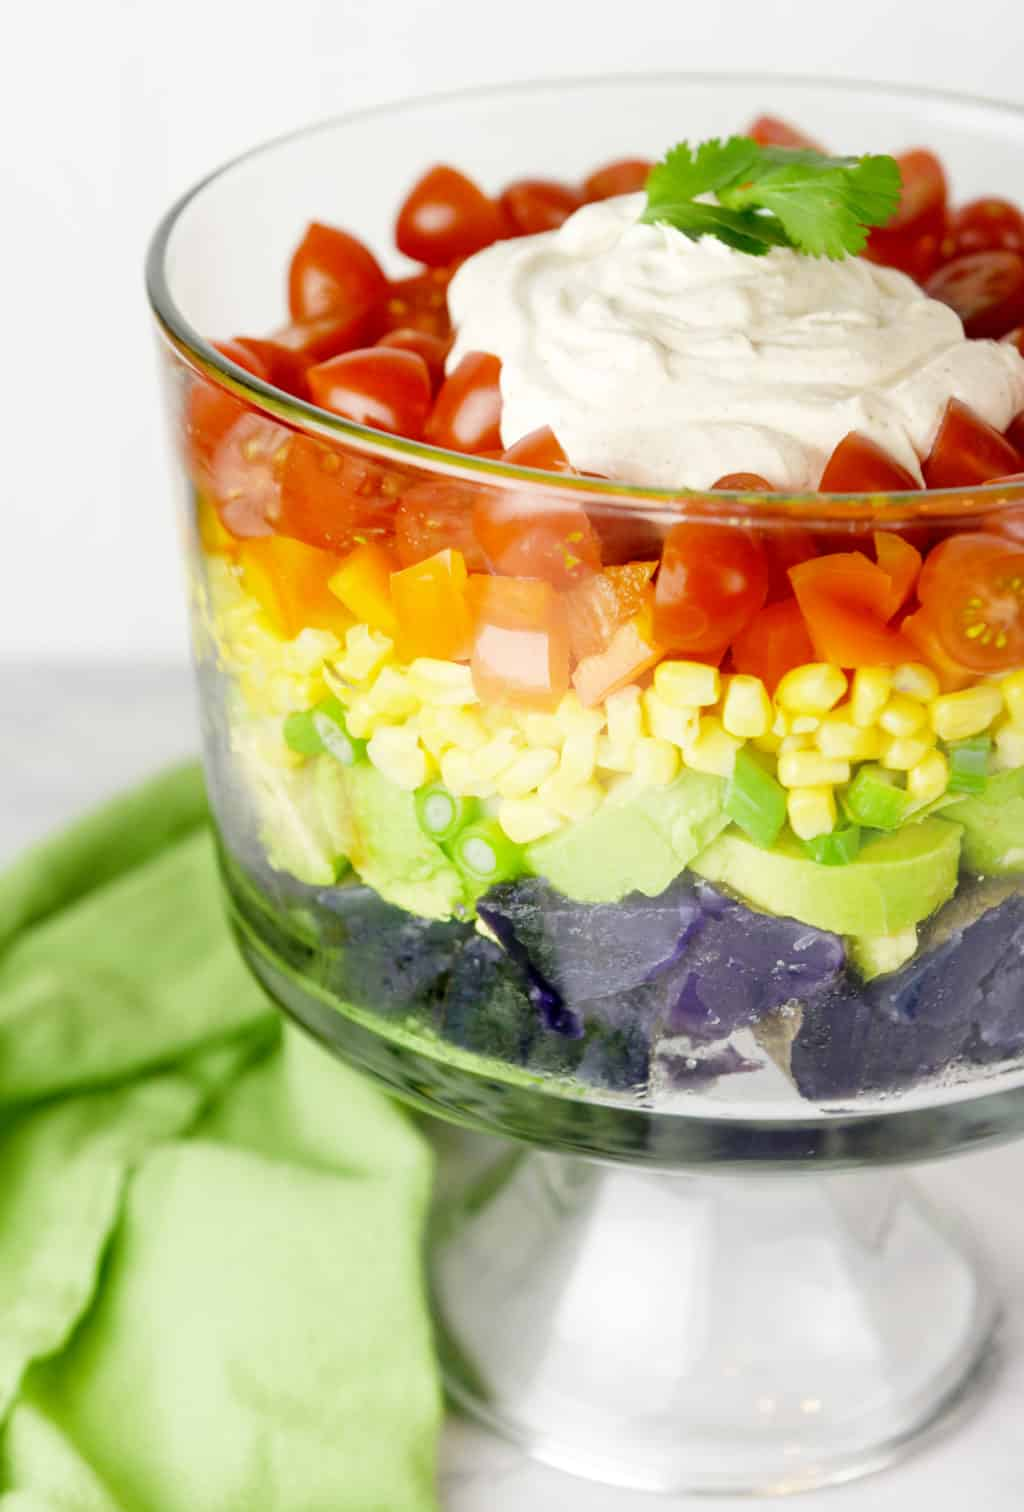 Rainbow Potato Salad!!! This salad has a southwest flair and is perfect for St. Patrick's day or any rainbow party!